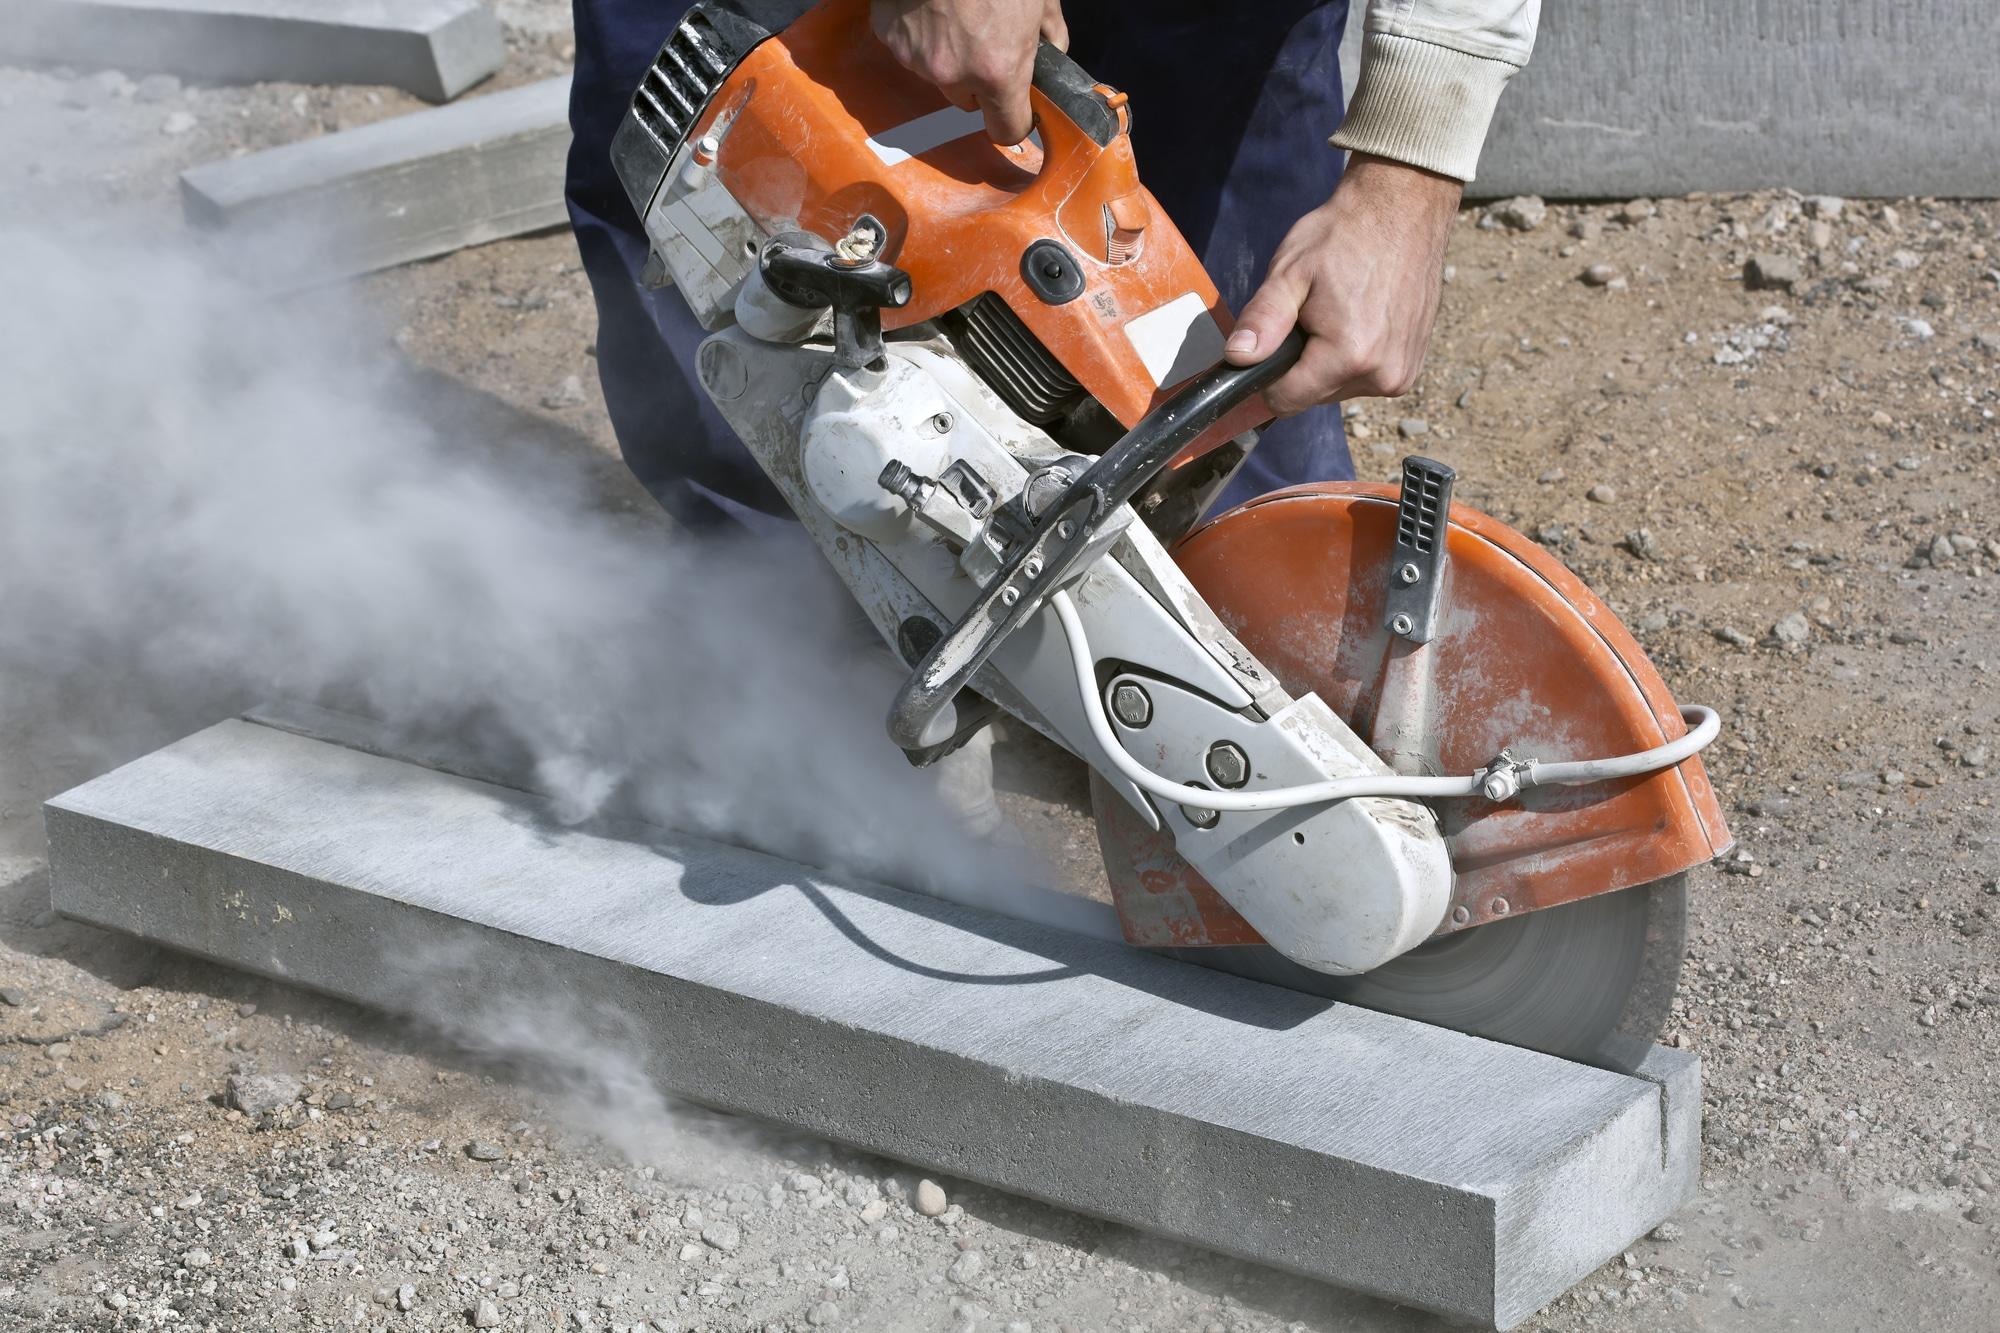 A Quick Guide To Find Concrete Cutting Services In Maroubra